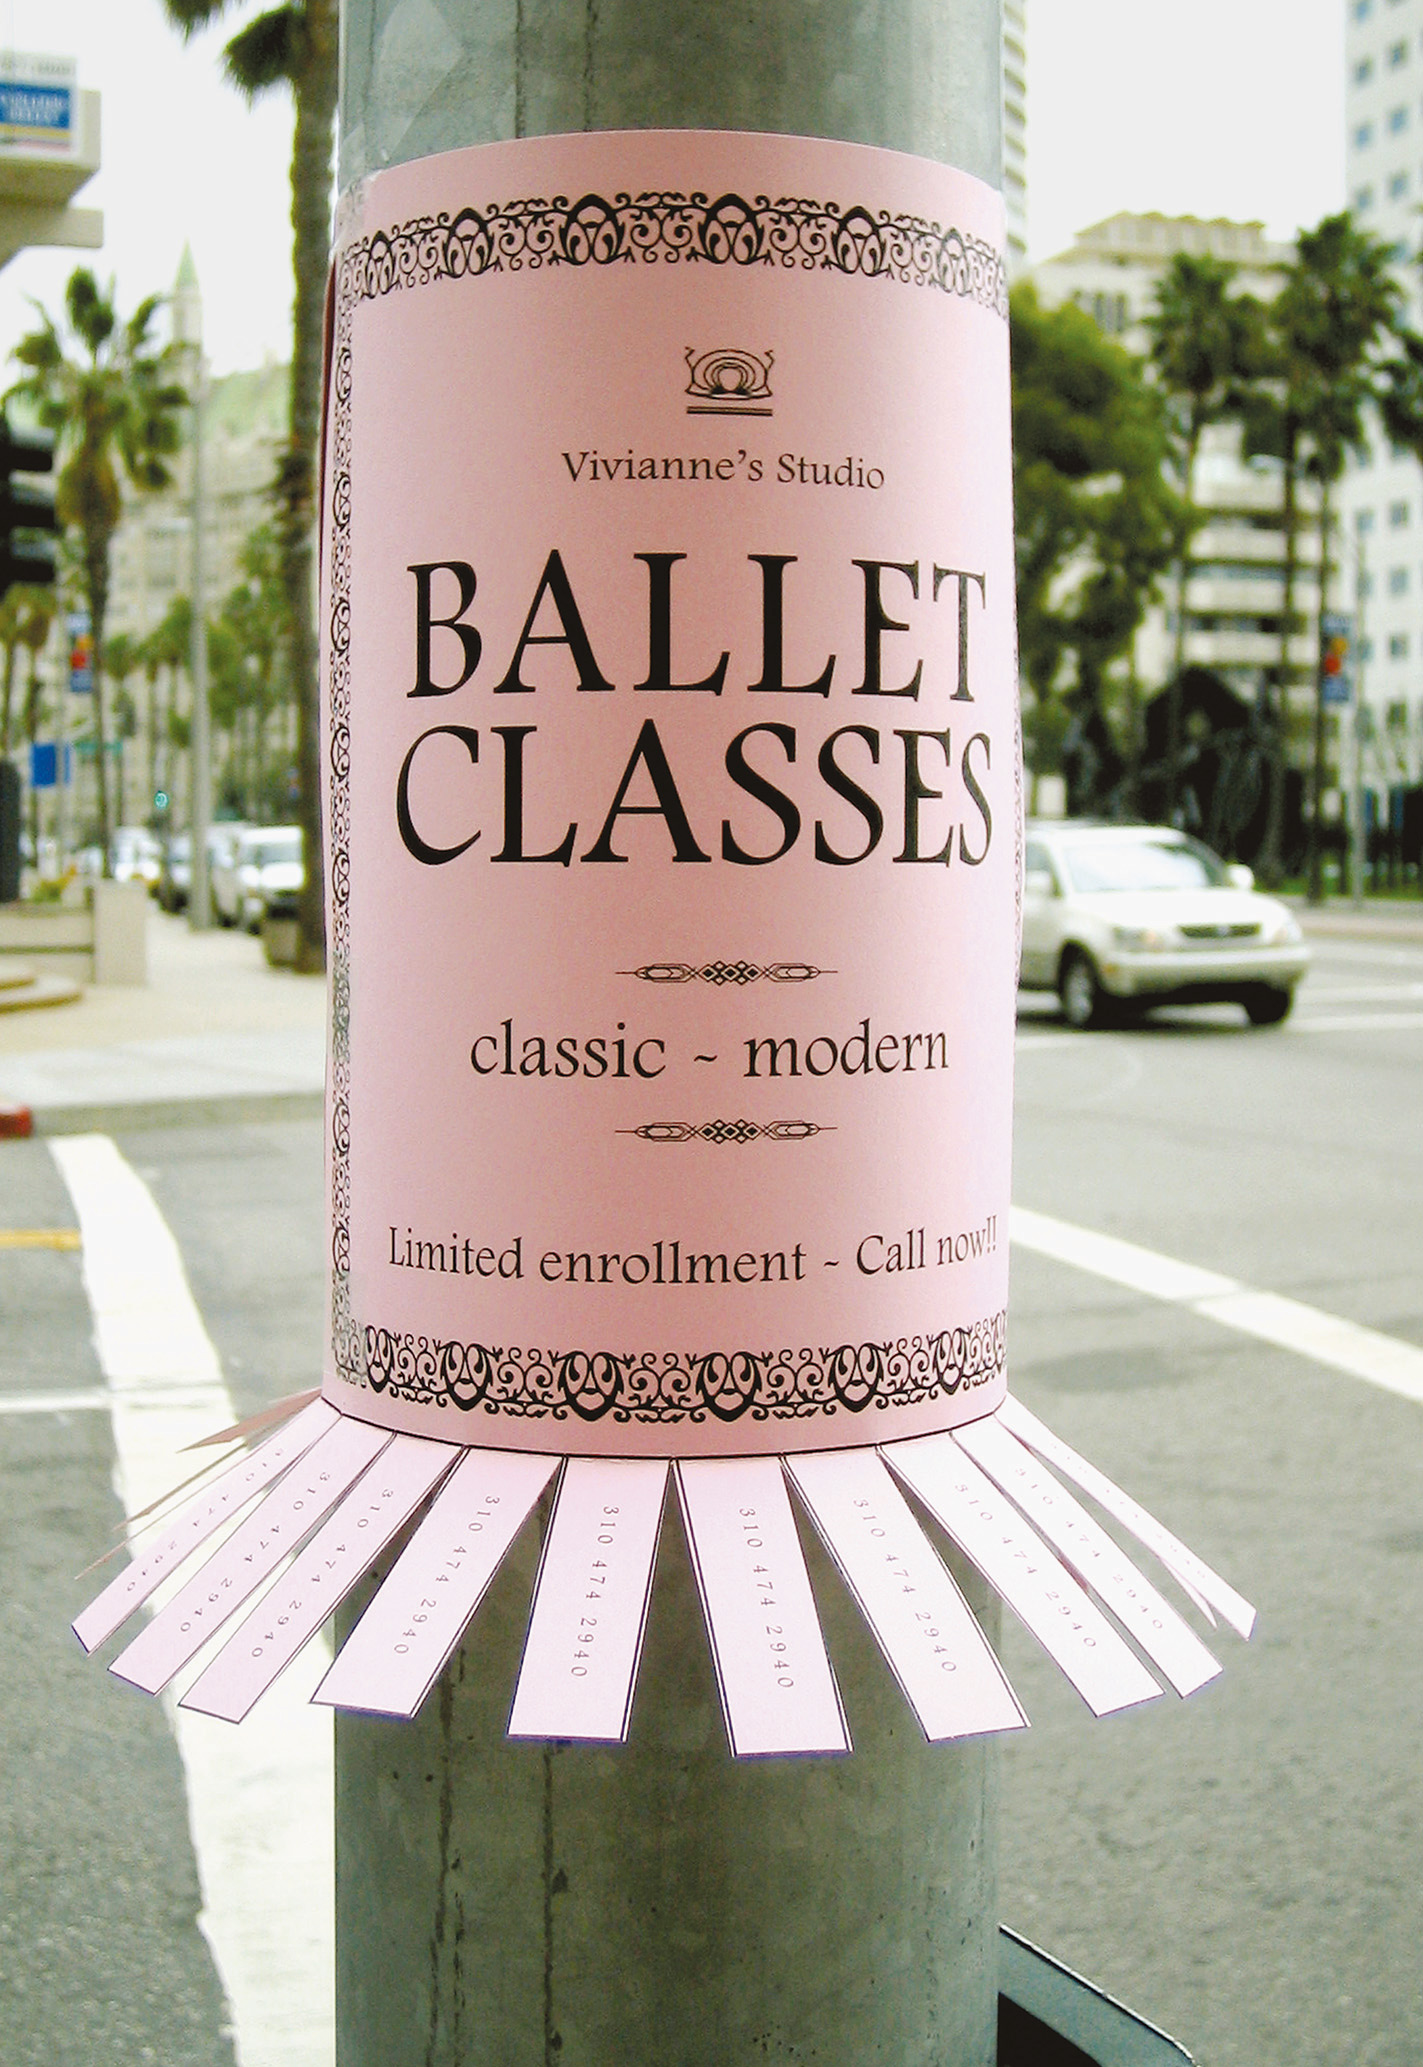 KR_160817_WitzDesign_01_050-Ballet-Classes